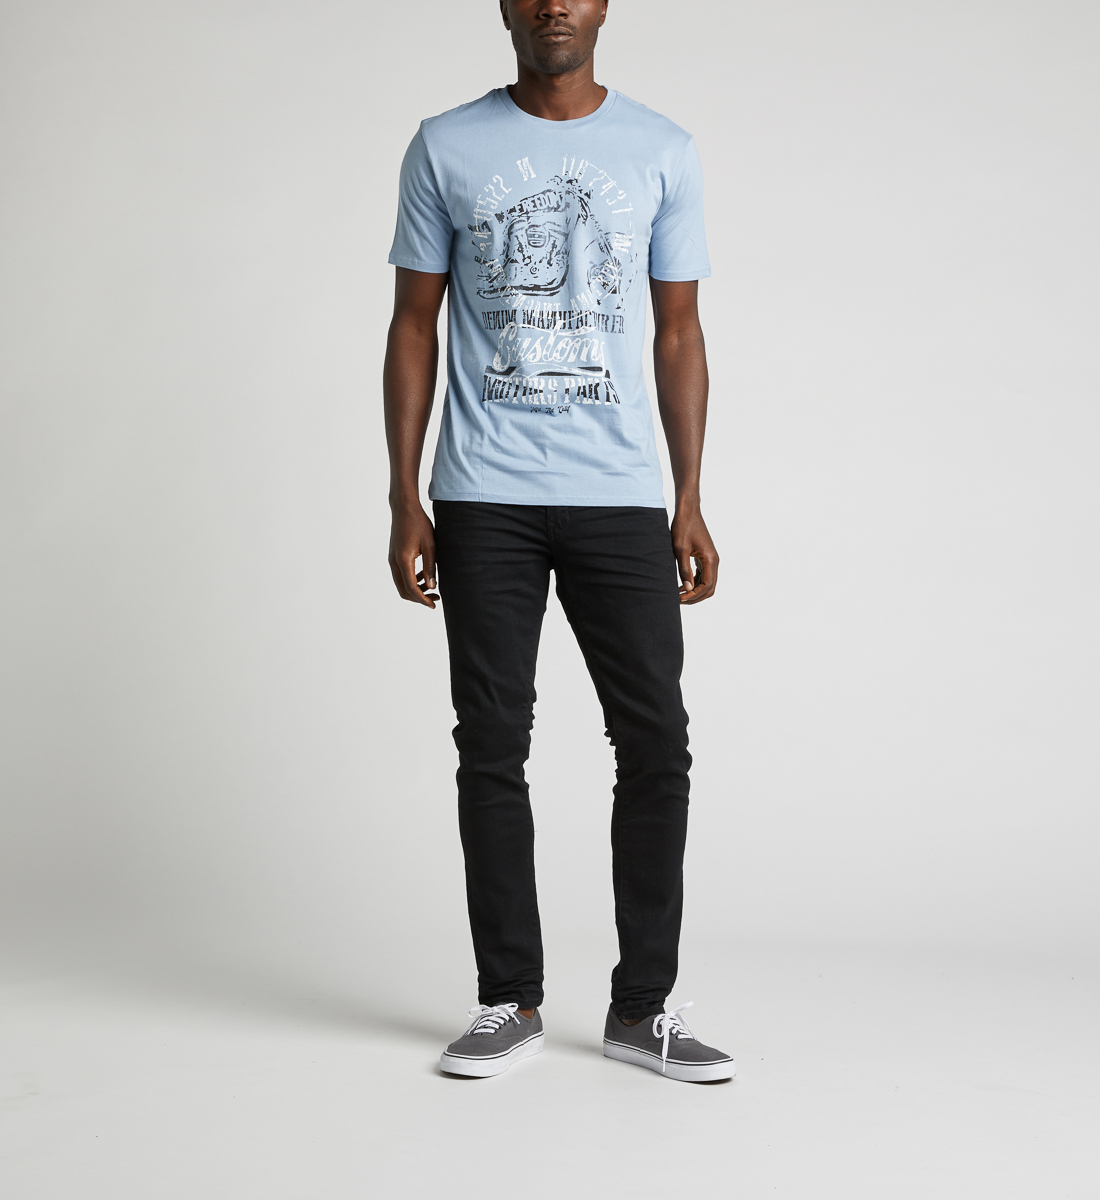 Dalian Graphic Tee,Light Blue Back